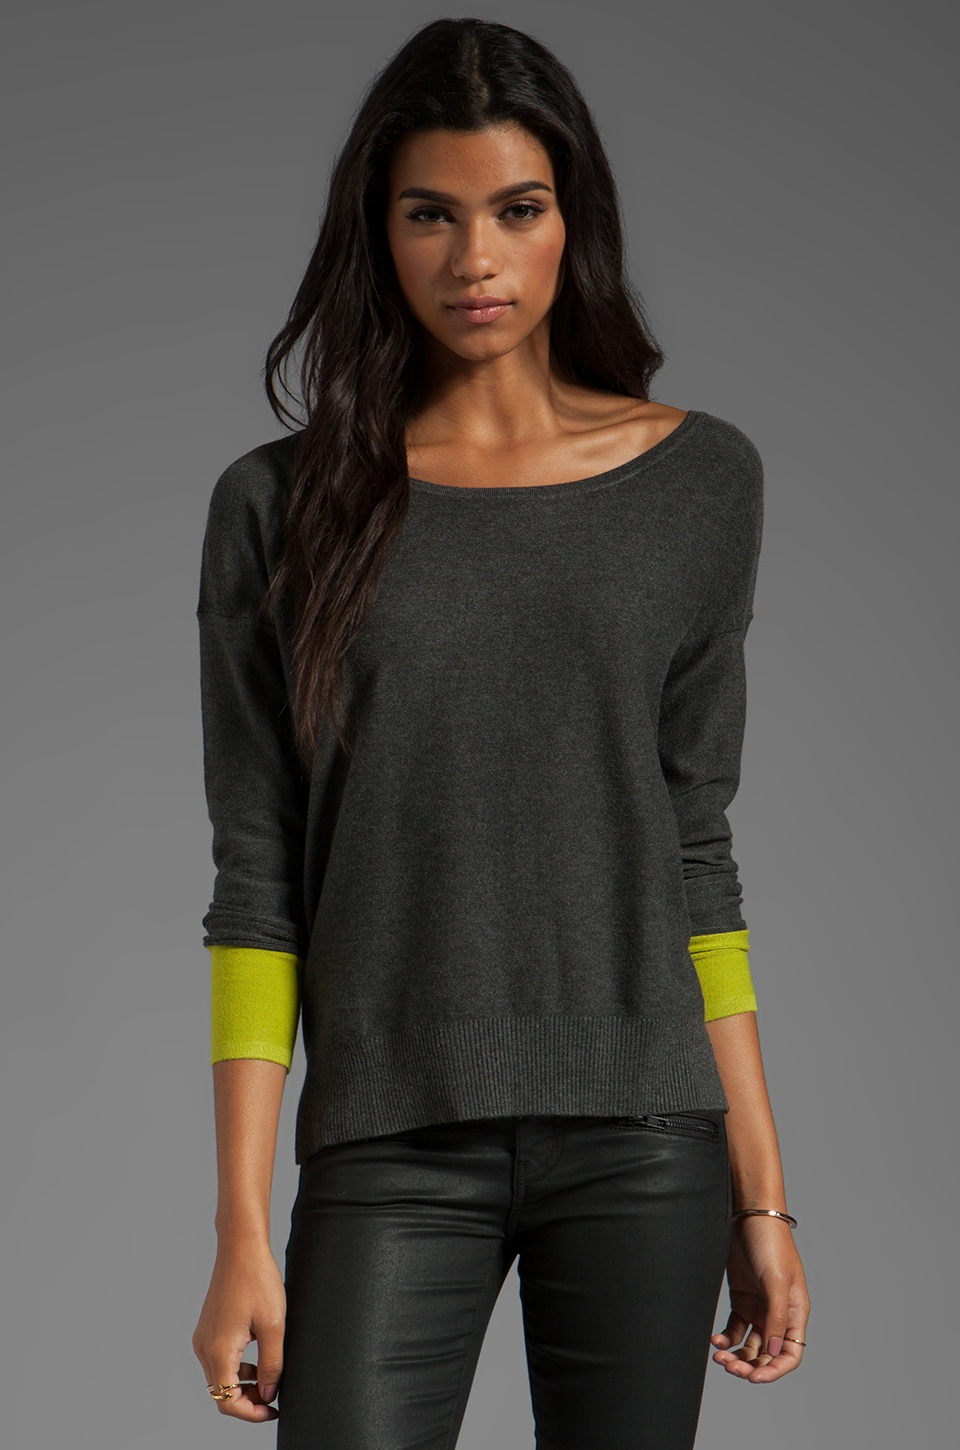 Central Park West Casper Color Block Pullover in Charcoal/Citron